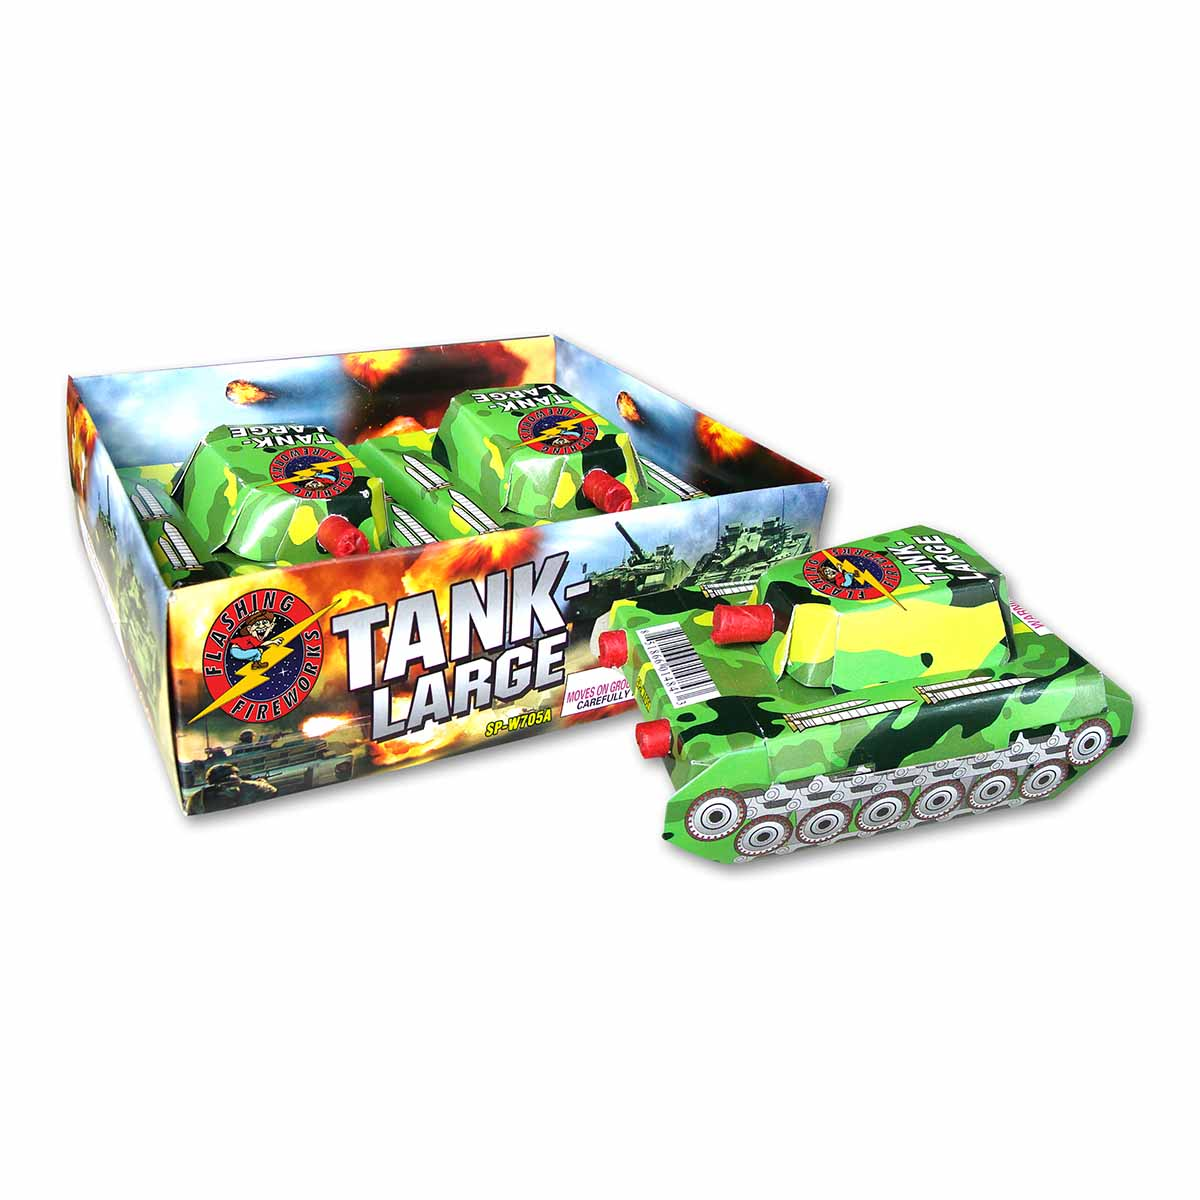 Large Tank by Flashing Fireworks